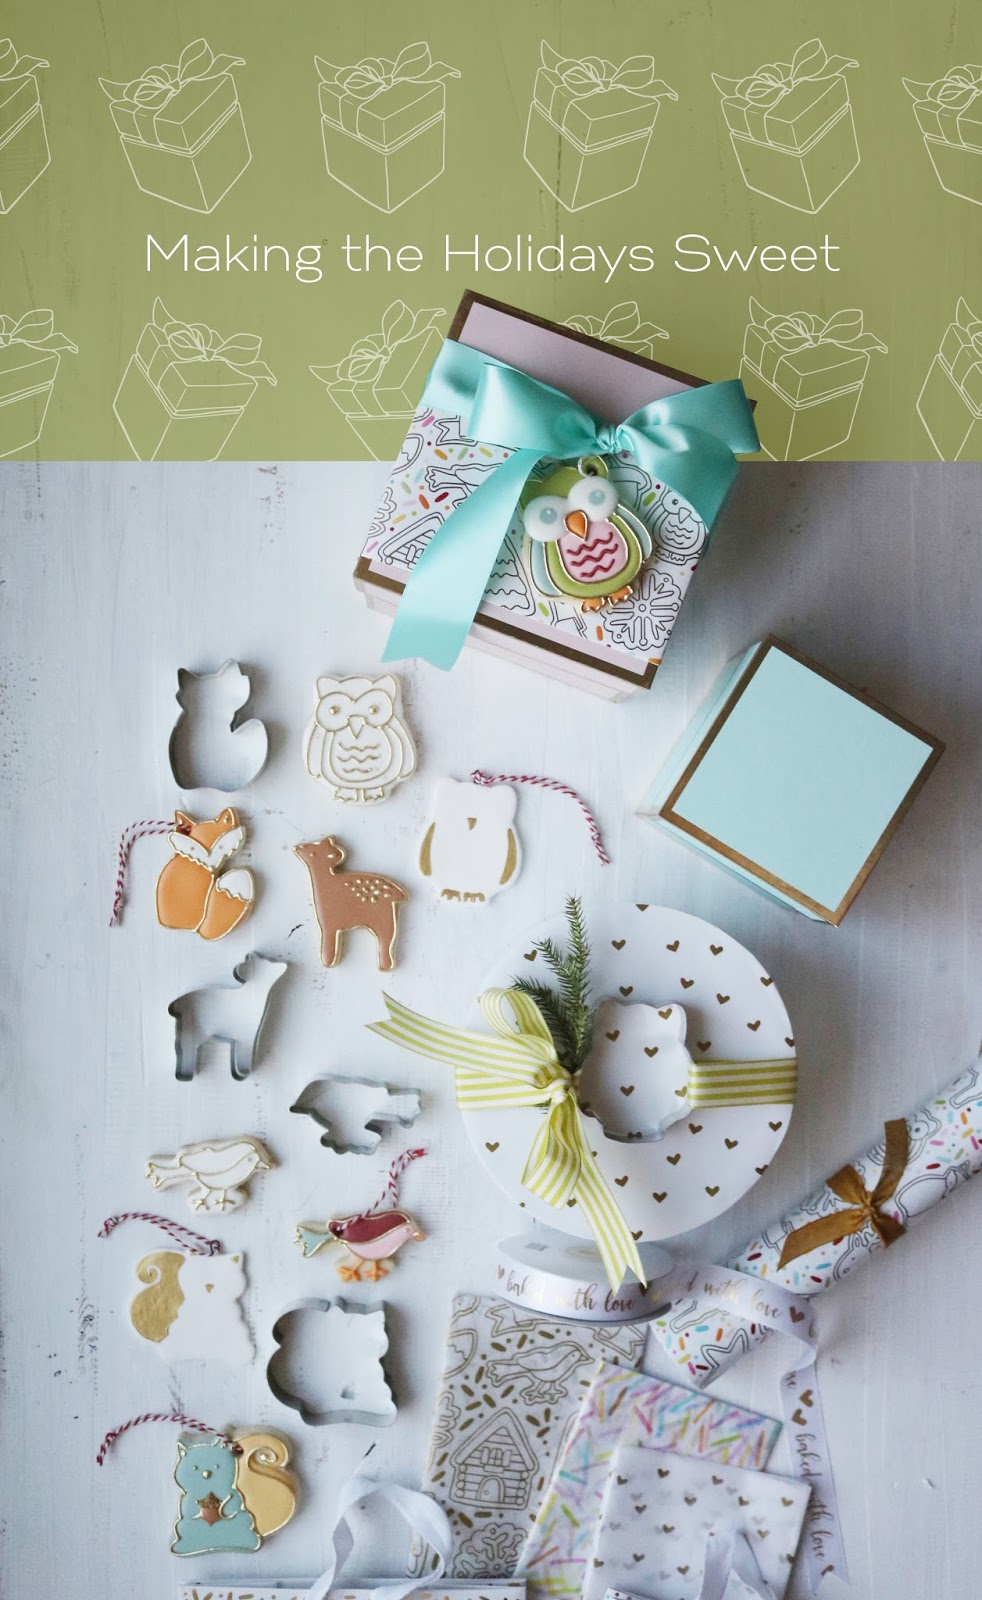 making the holidays sweet with the Sweet Life Collection | creativebag.com